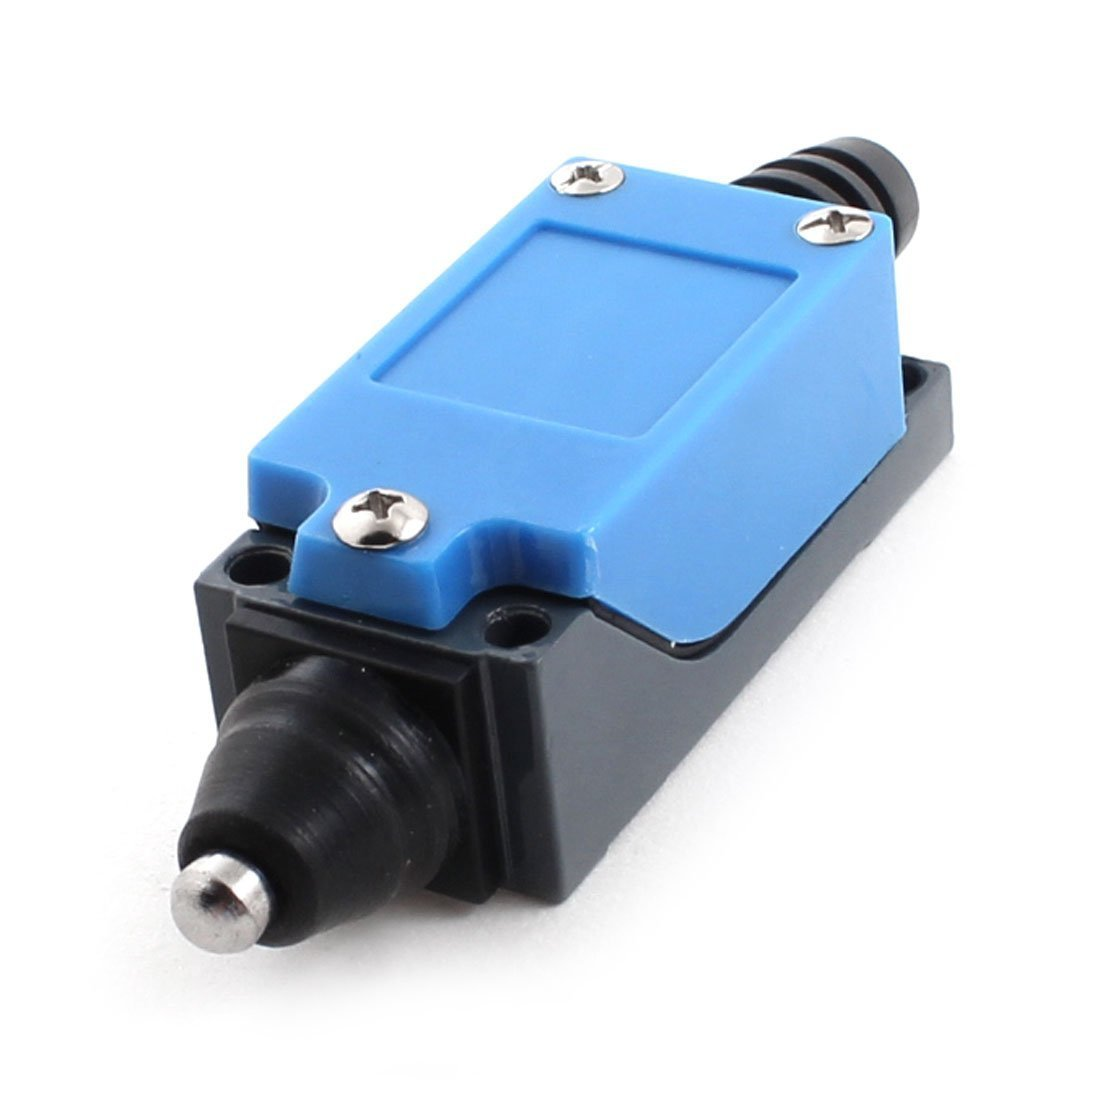 sourcingmap® ME-8111 DPST 1NO 1NC Automatic Reset Pin Plunger Enclosed Limit Switch a14092400ux0139